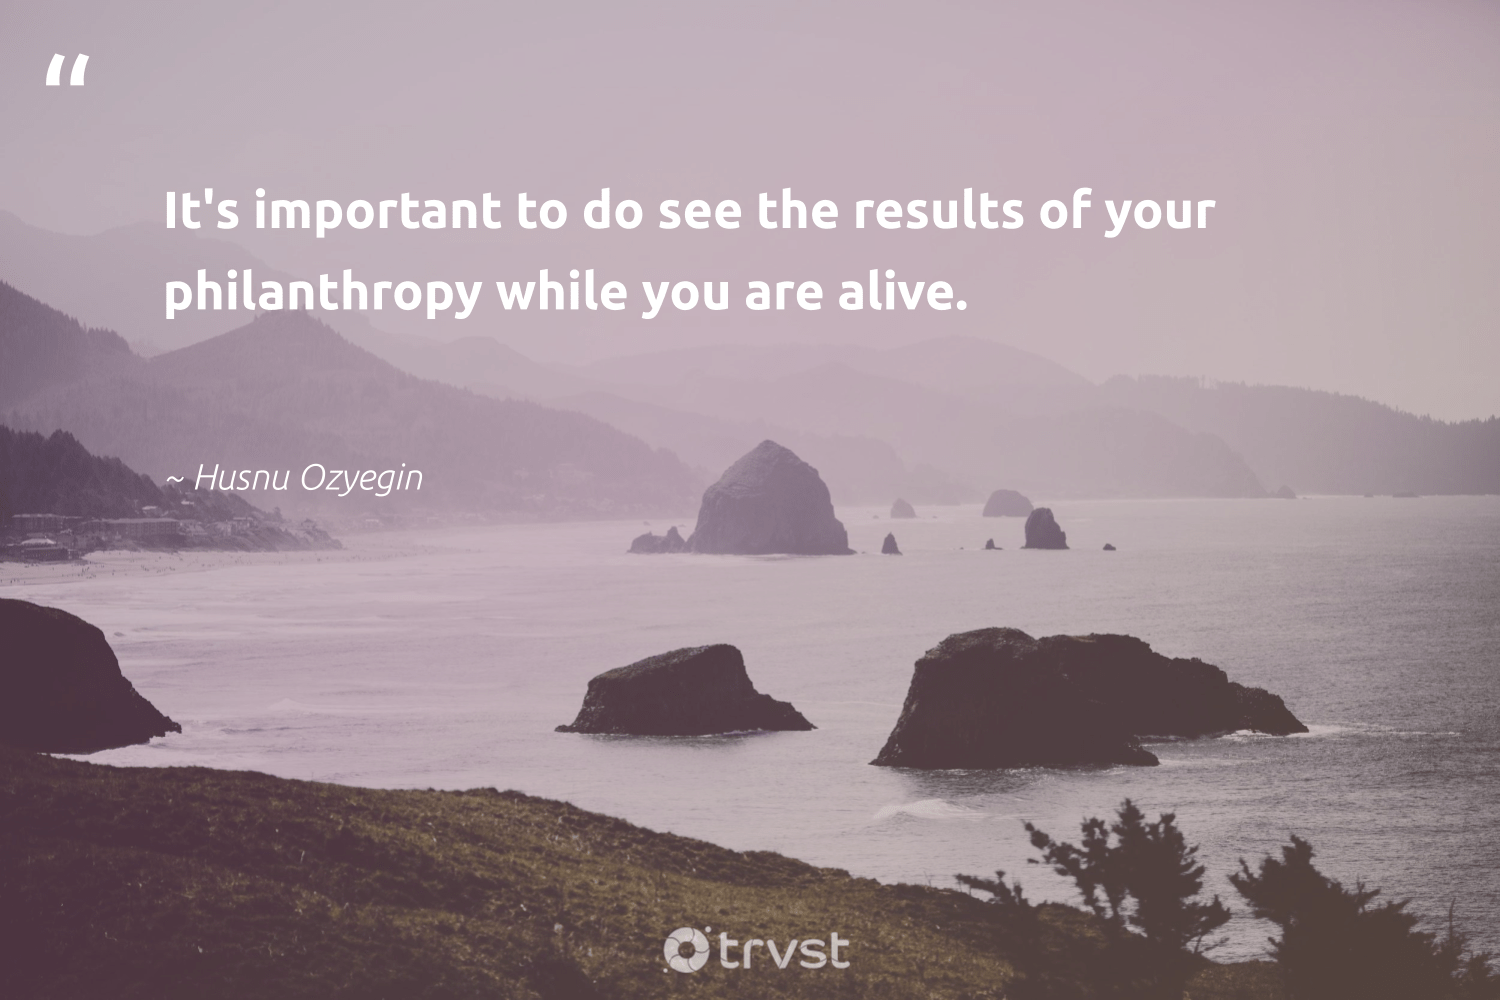 """It's important to do see the results of your philanthropy while you are alive.""  - Husnu Ozyegin #trvst #quotes #philanthropy #results #philanthropic #giveforthefuture #itscooltobekind #dogood #togetherwecan #changemakers #ecoconscious #beinspired"